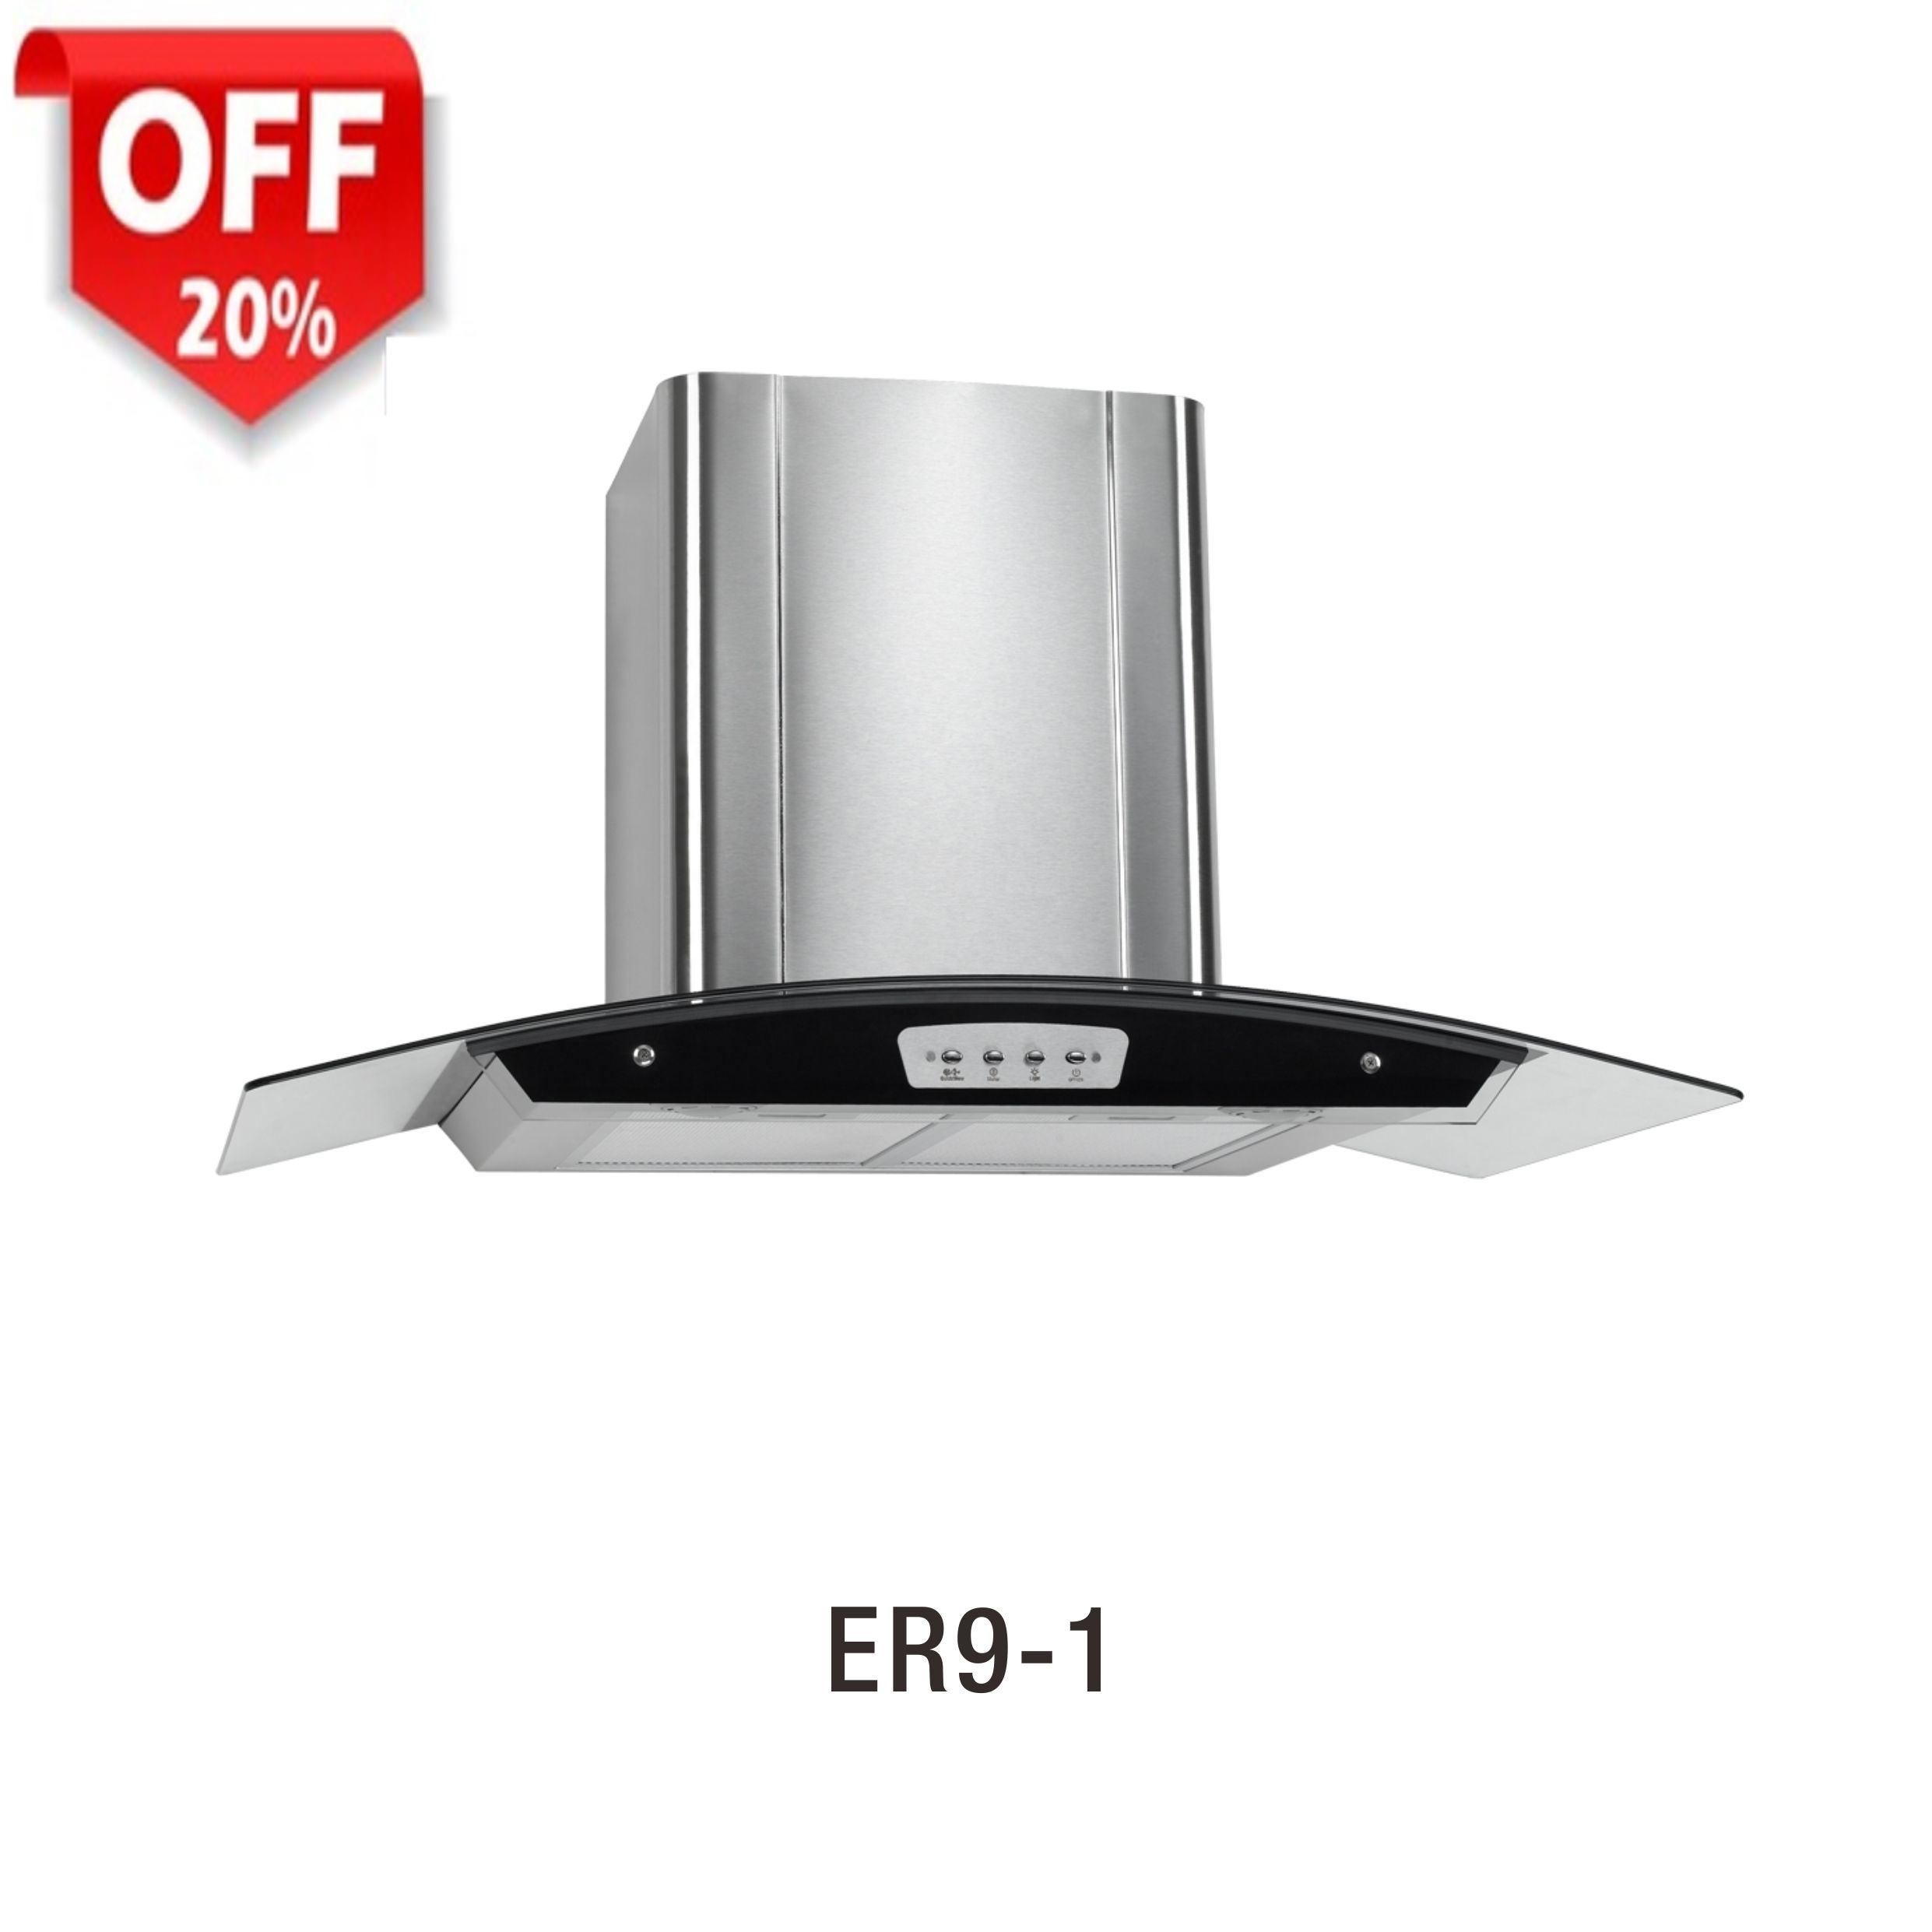 "ER9-1 Chimney cooker Hood Black Stainless Steel 30"" Under Cabine Range Hoods"